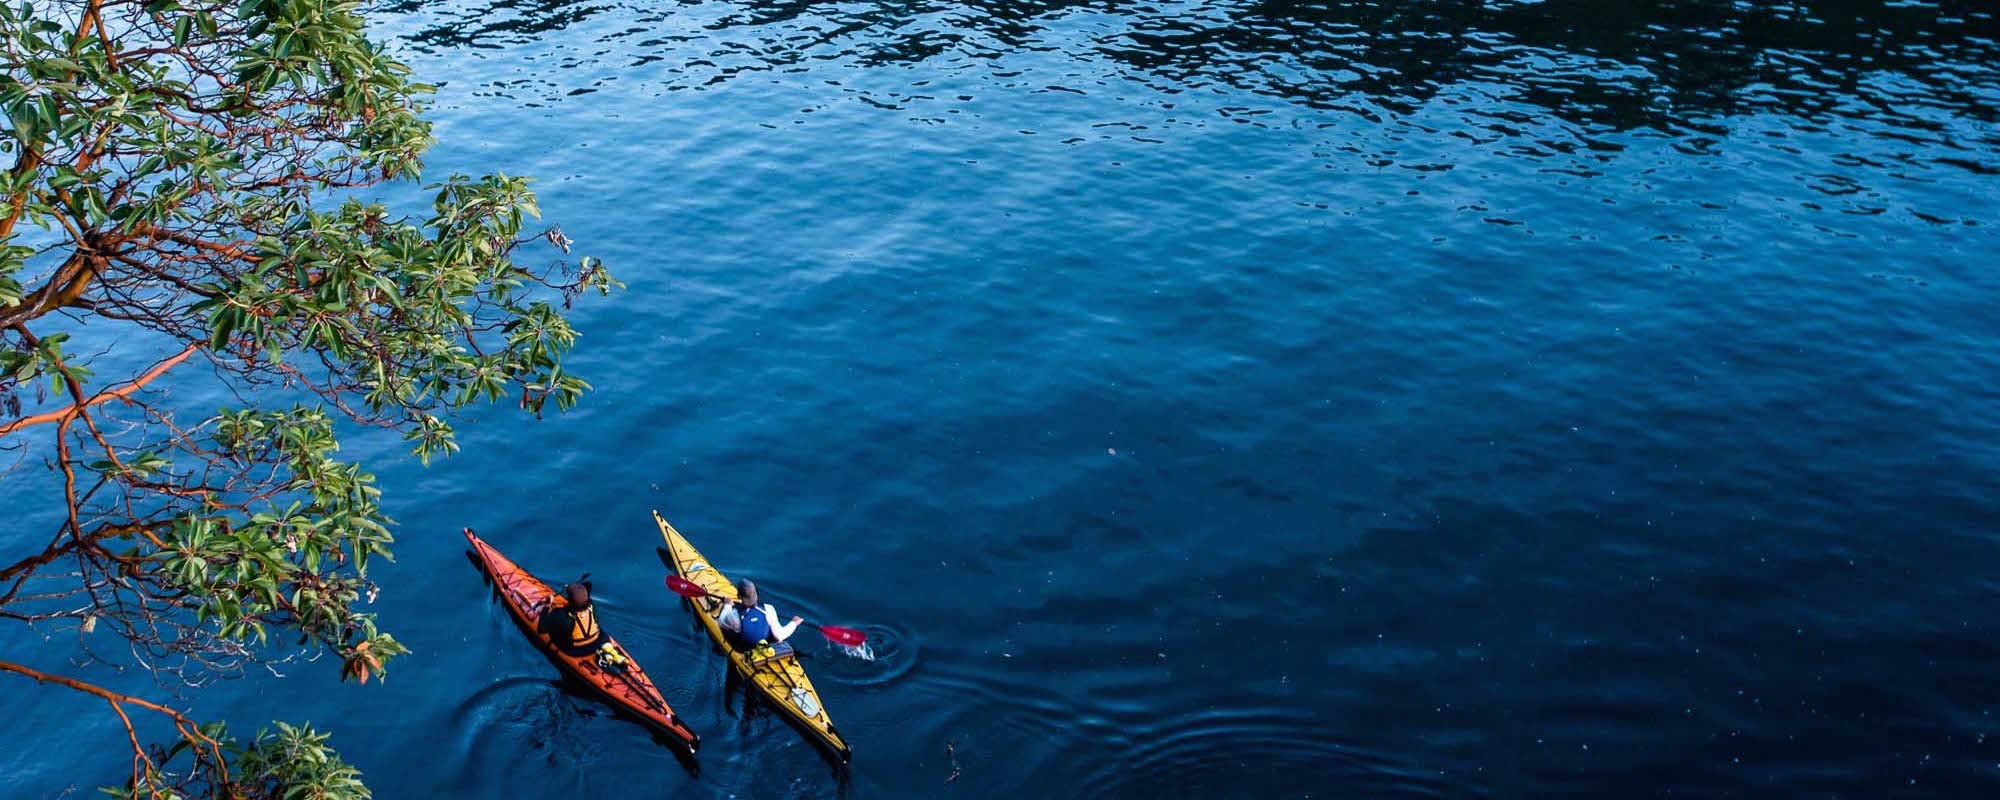 kayak tours around southern gulf islands led by  Pender Island Kayak Adventures team